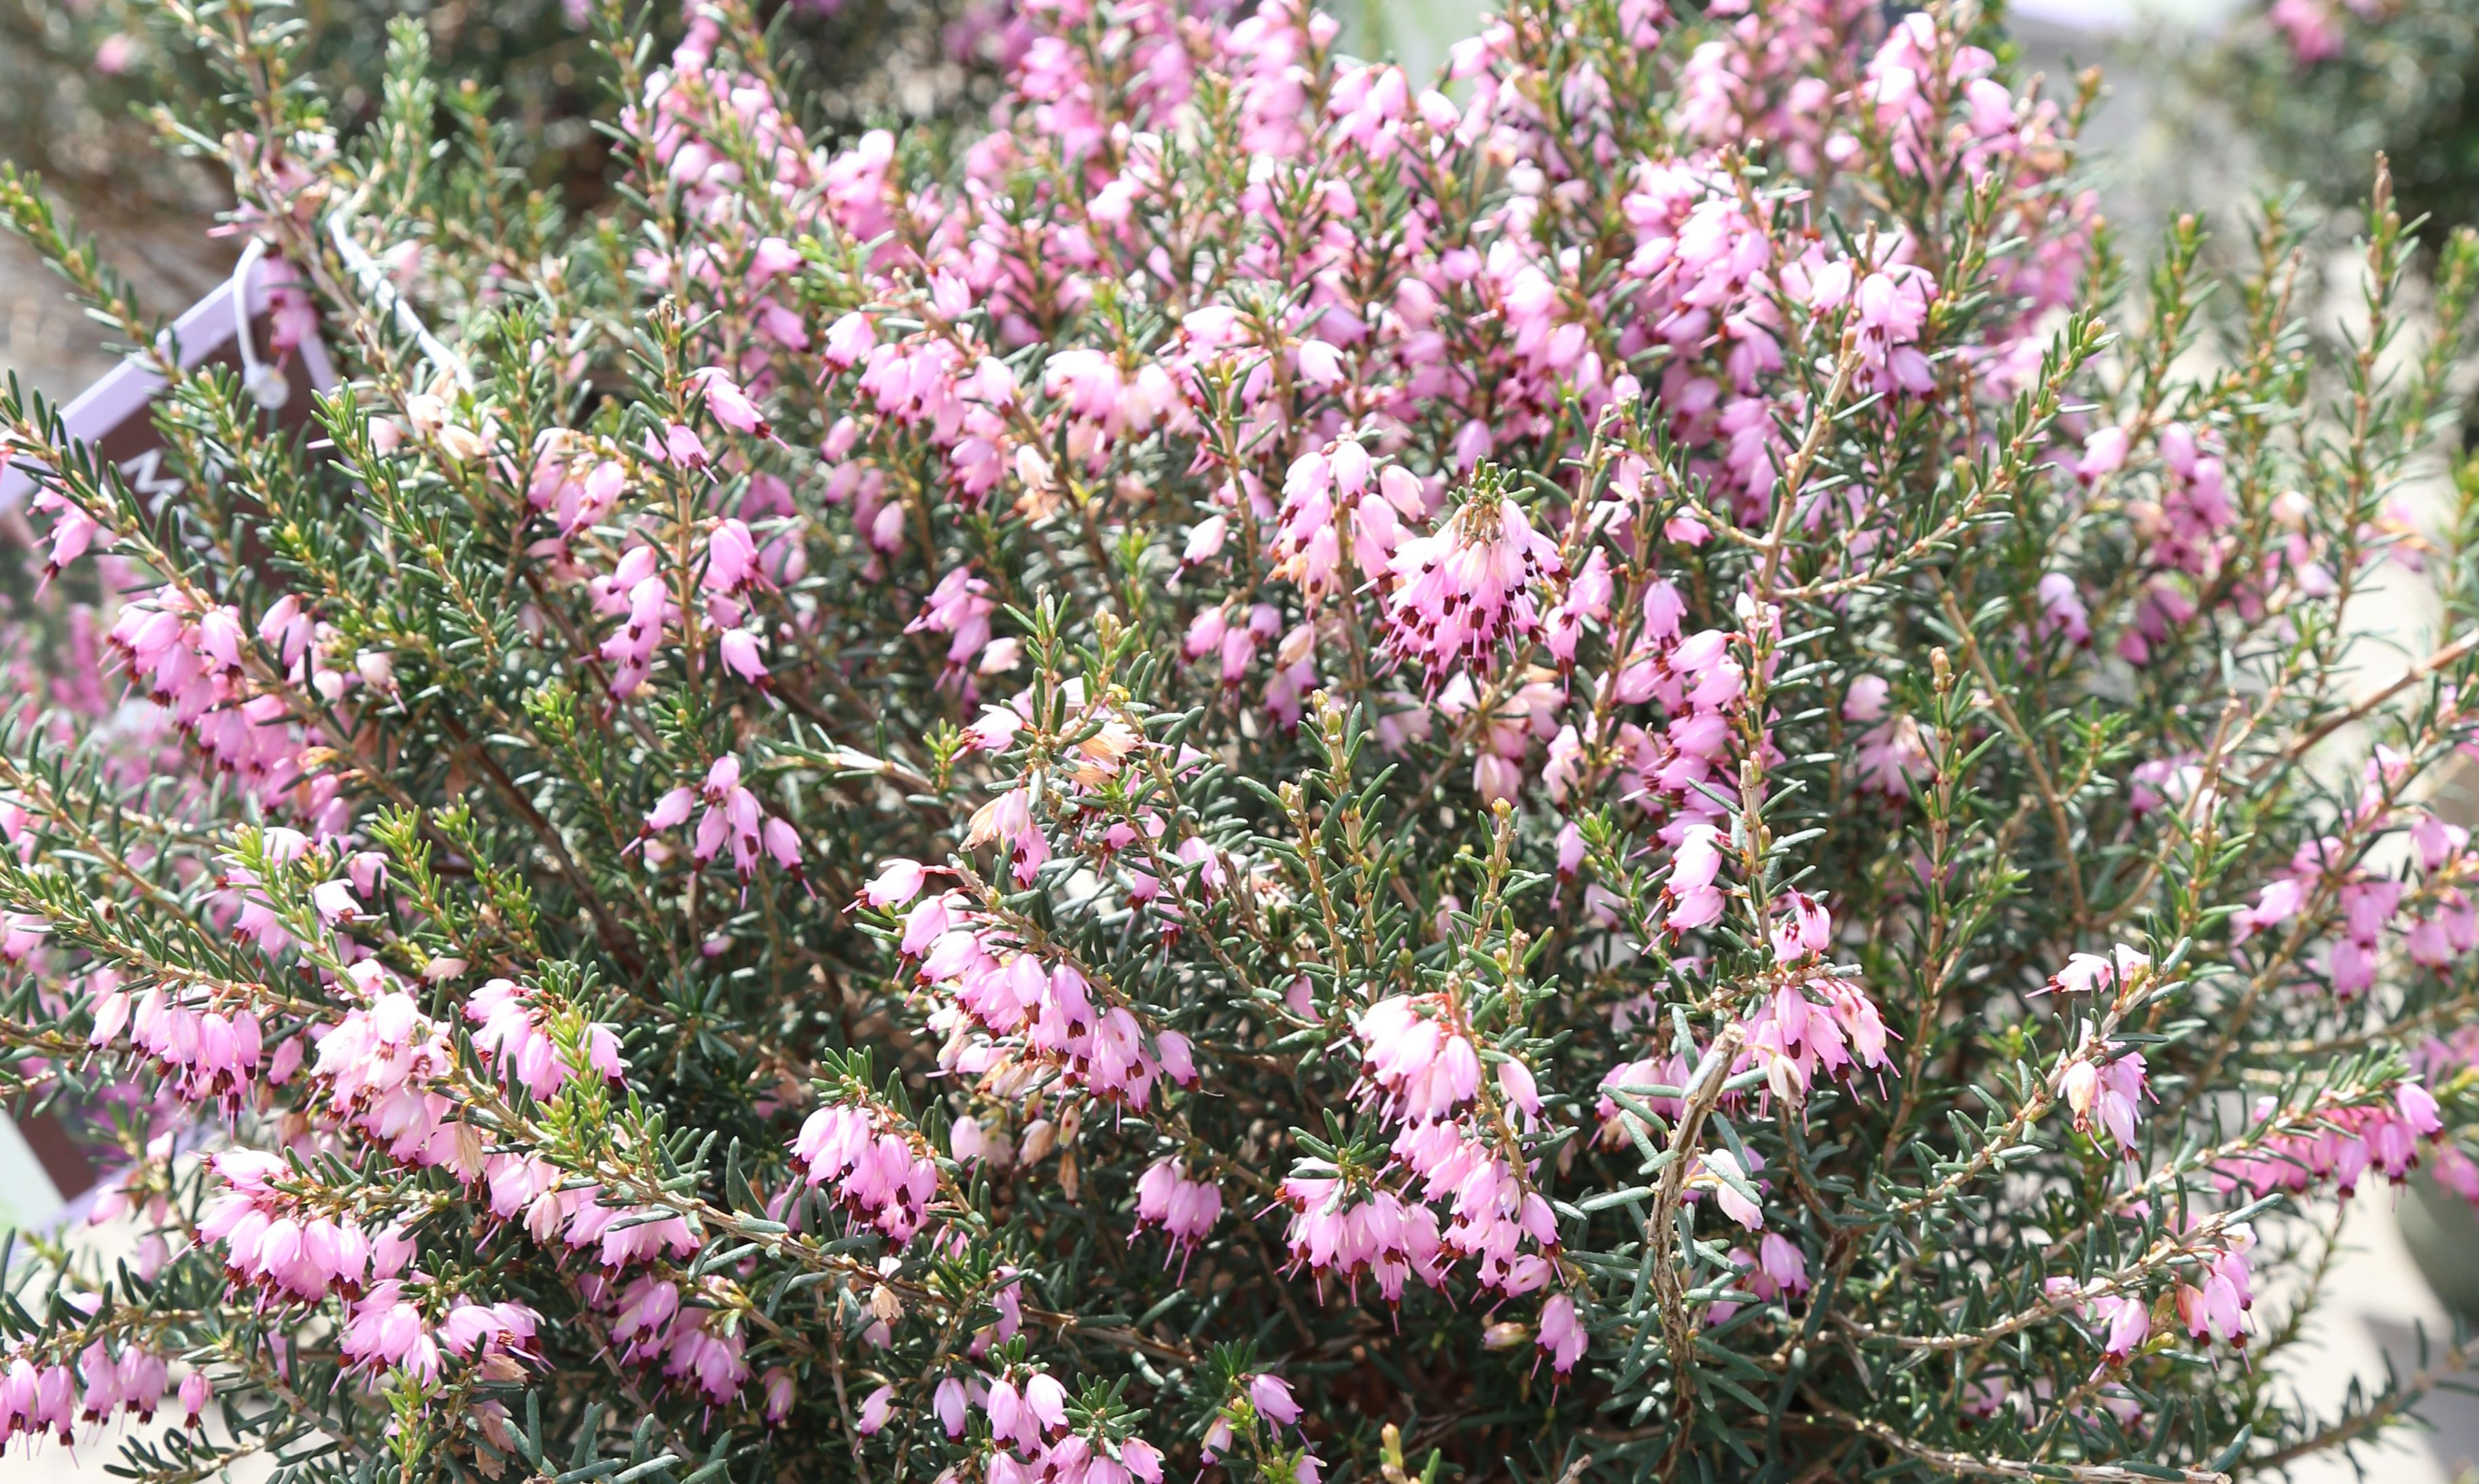 Mediterranean Pink Heather This Mounding Evergreen Shrub Establishes Quickly For A Fine Dense Ground Cover Or Border It Offers Plants Evergreen Shrubs Bloom